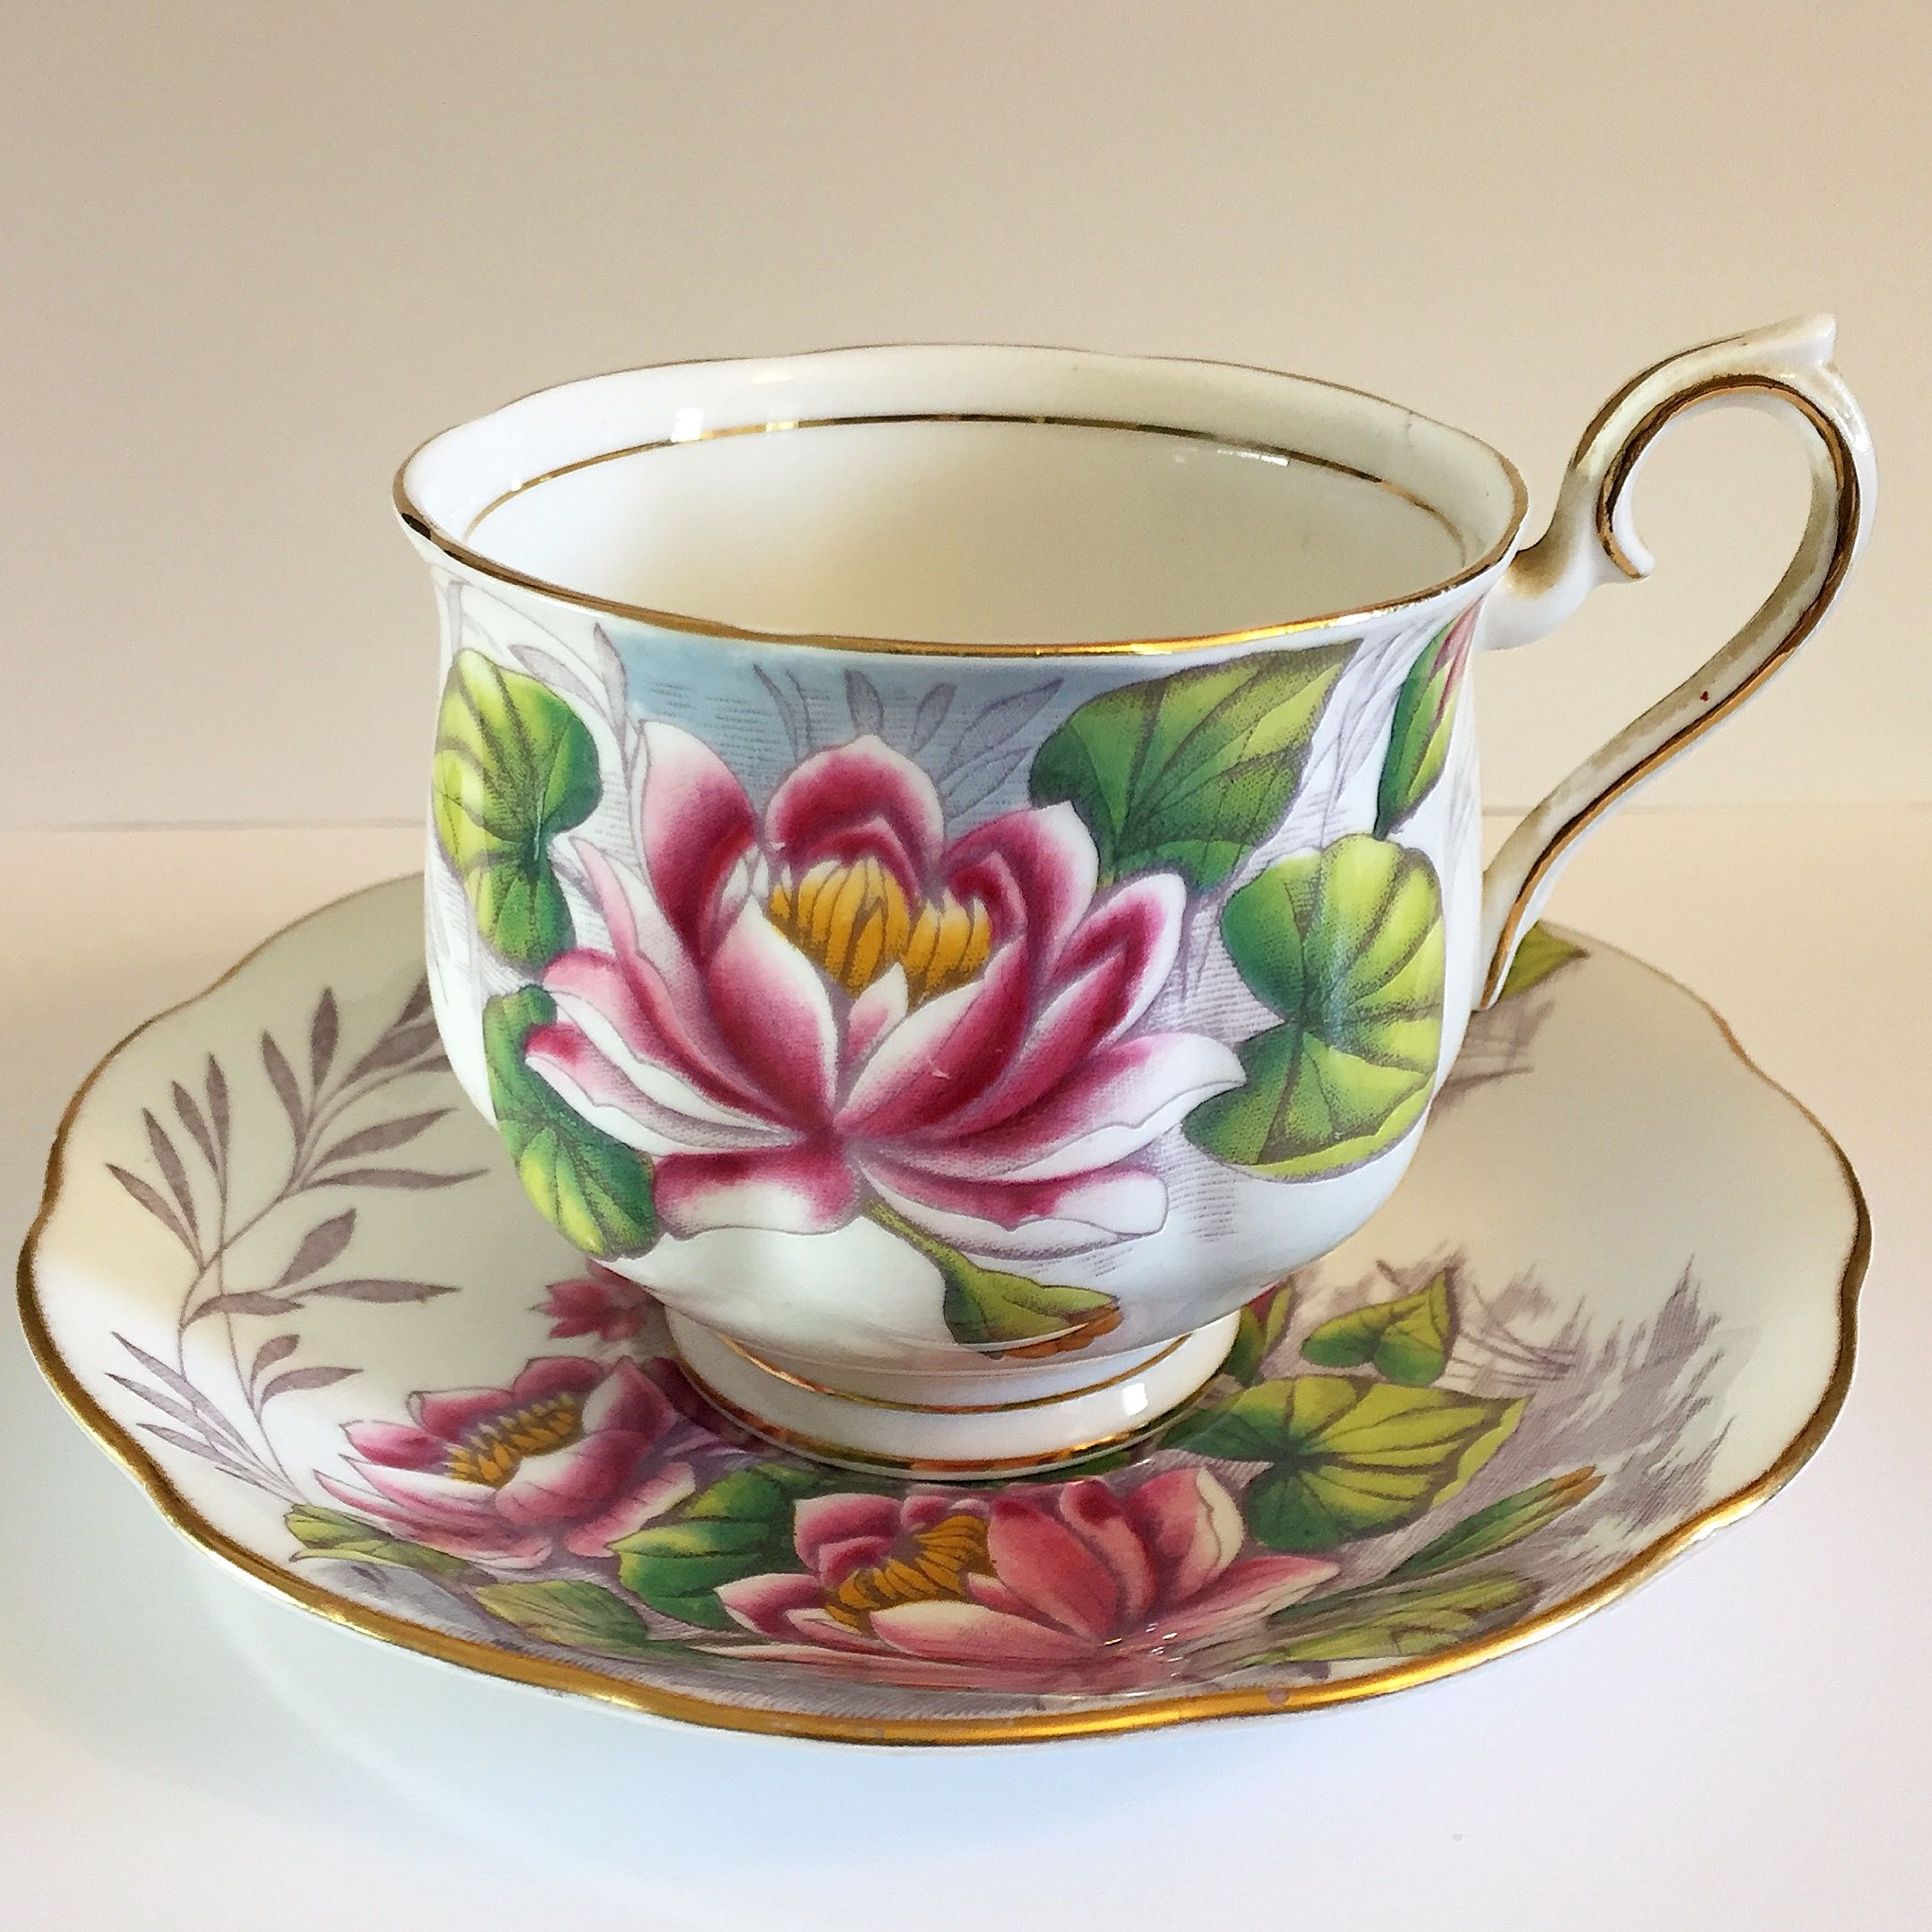 Gah beautiful royal albert flower of the month teacup this one beautiful royal albert flower of the month teacup this one is the water lily for the month of july this is a great teacup for a royal albert collector and izmirmasajfo Gallery